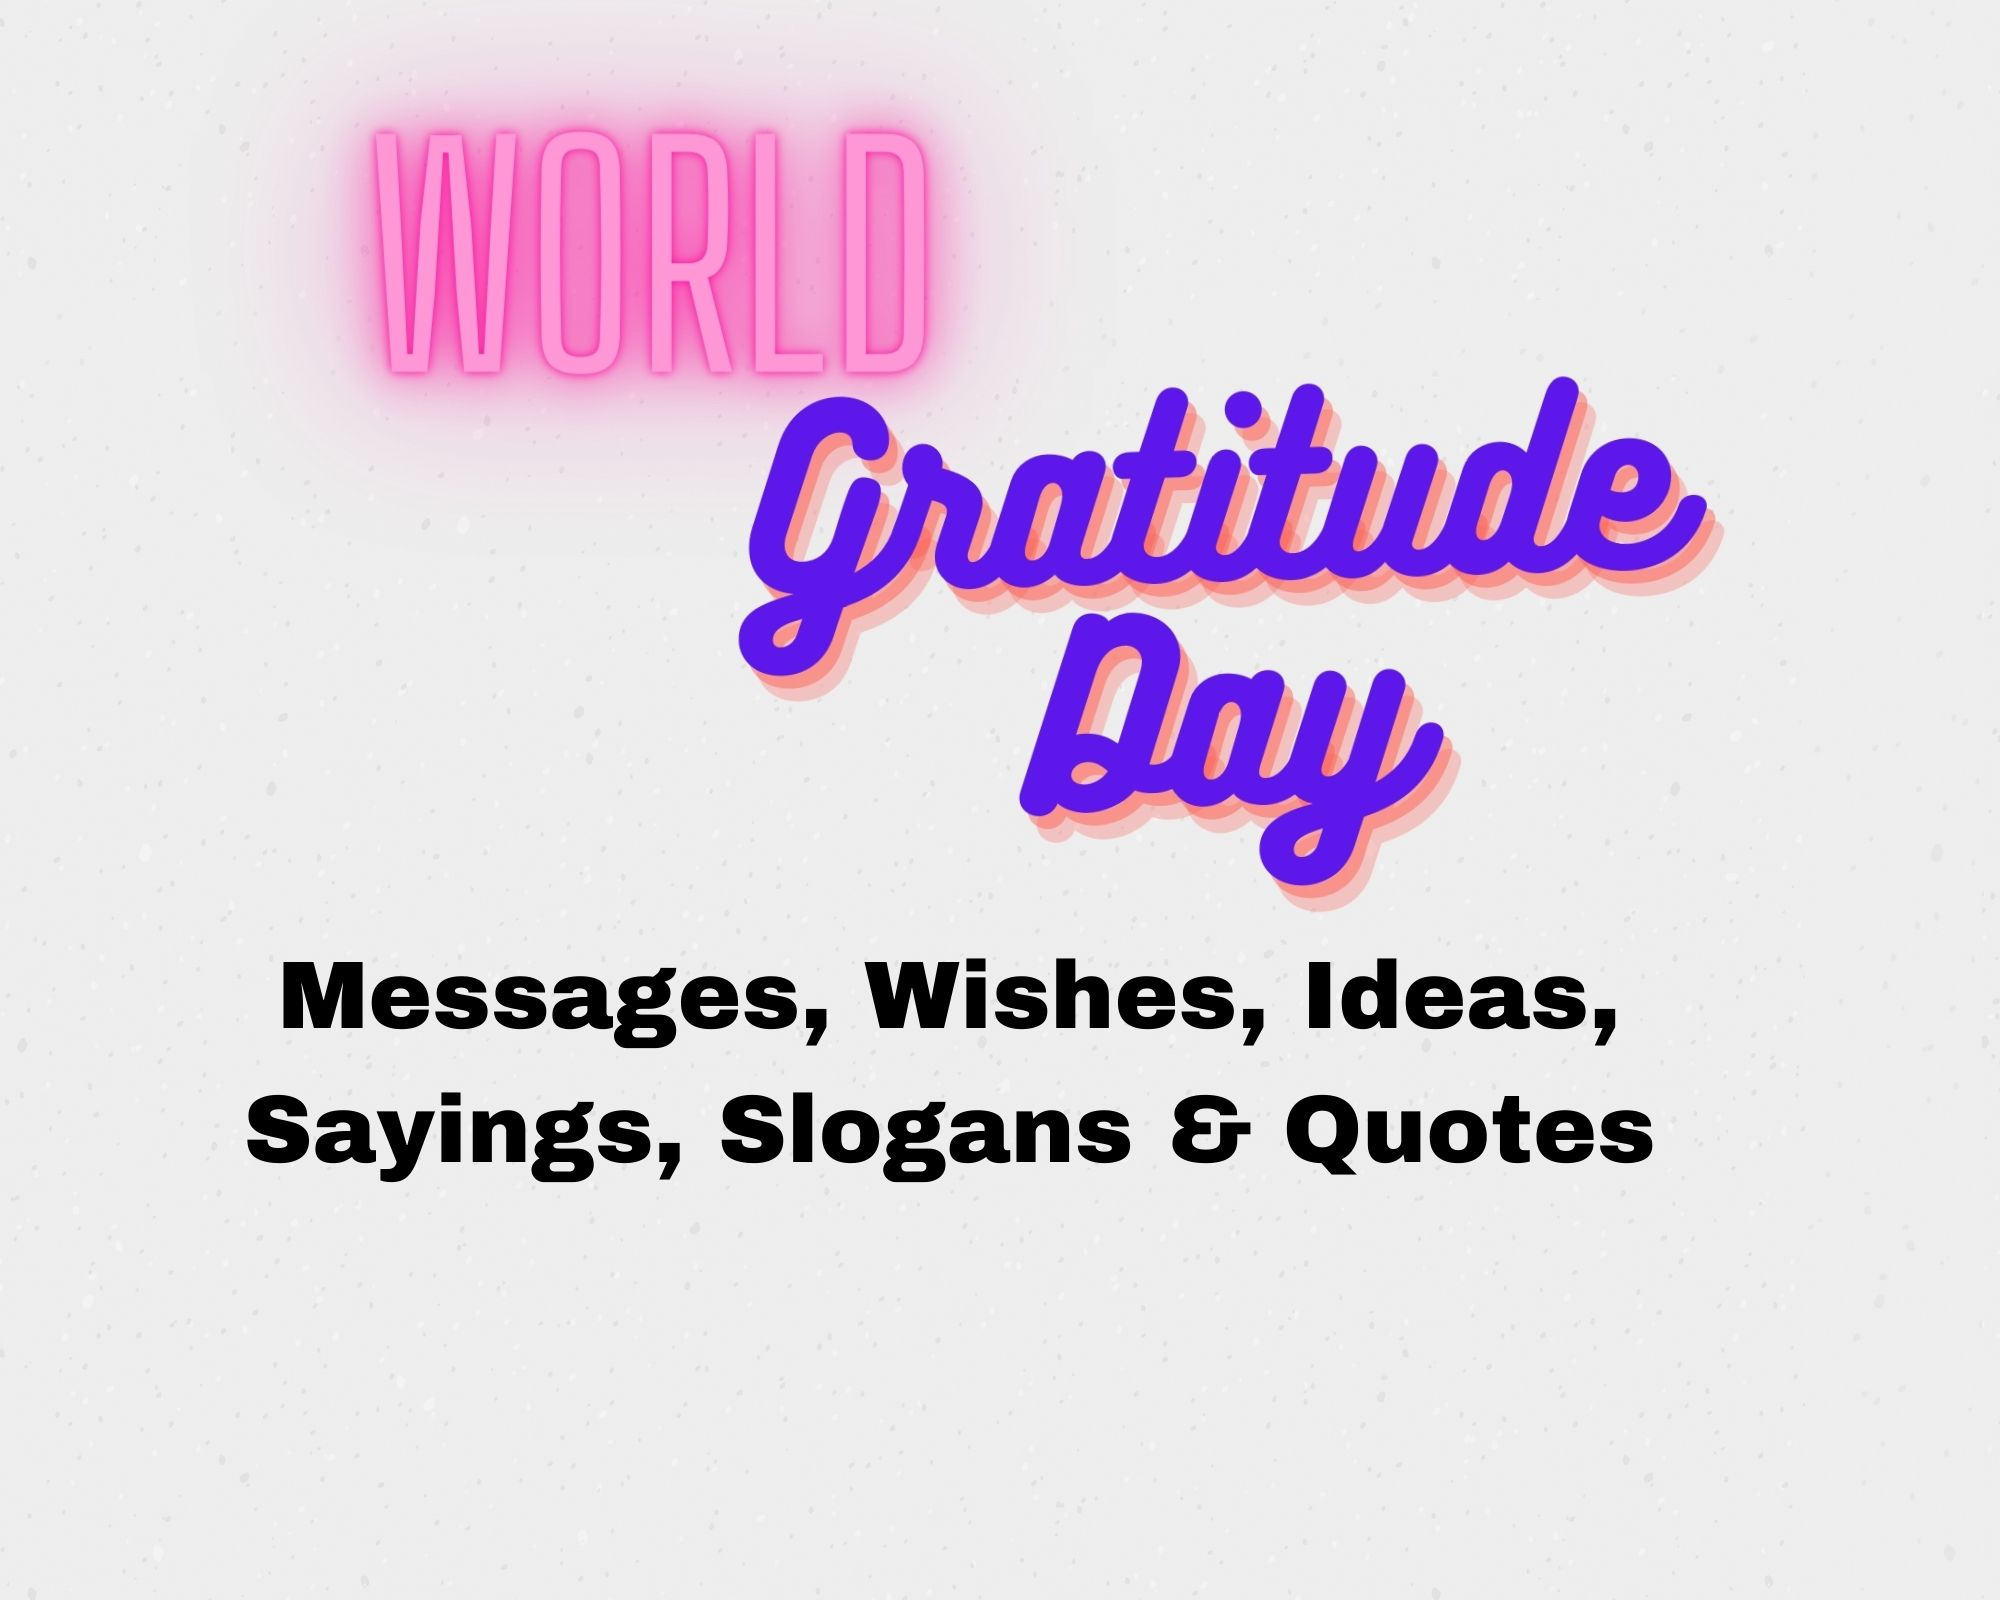 Happy World Gratitude Day Messages, Wishes, Ideas, Sayings, Slogans & Quotes